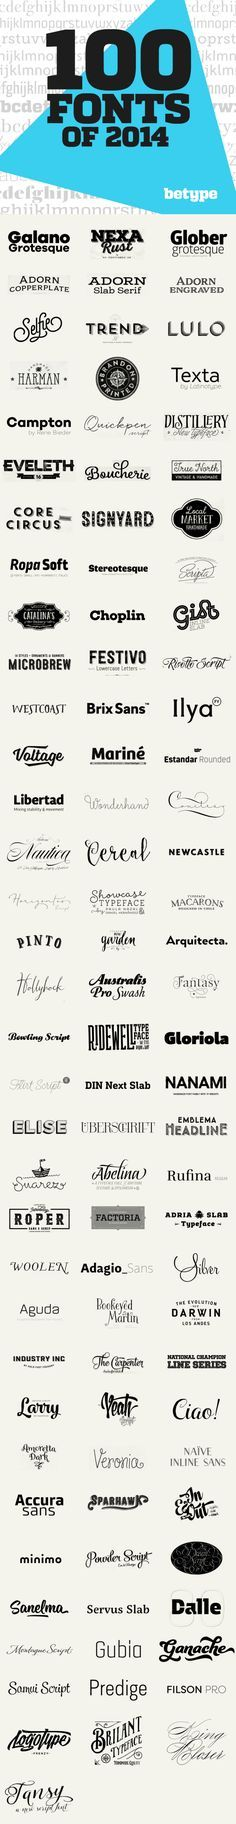 "100 Best Fonts of 2014. Links at the bottom of the website <a href=""http://www.lab333.com"" rel=""nofollow"" target=""_blank"">www.lab333.com</a> <a href=""http://www.facebook.com/pages/LAB-STYLE/585086788169863"" rel=""nofollow"" target=""_blank"">www.facebook.com/...</a> <a href=""http://www.lab333style.com"" rel=""nofollow"" target=""_blank"">www.lab333style.com</a> <a href=""http://lablikes.tumblr.com"" rel=""nofollow"" target=""_blank"">lablikes.tumblr.com</a> <a href=""http://www.pinterest.com/labstyle""…"